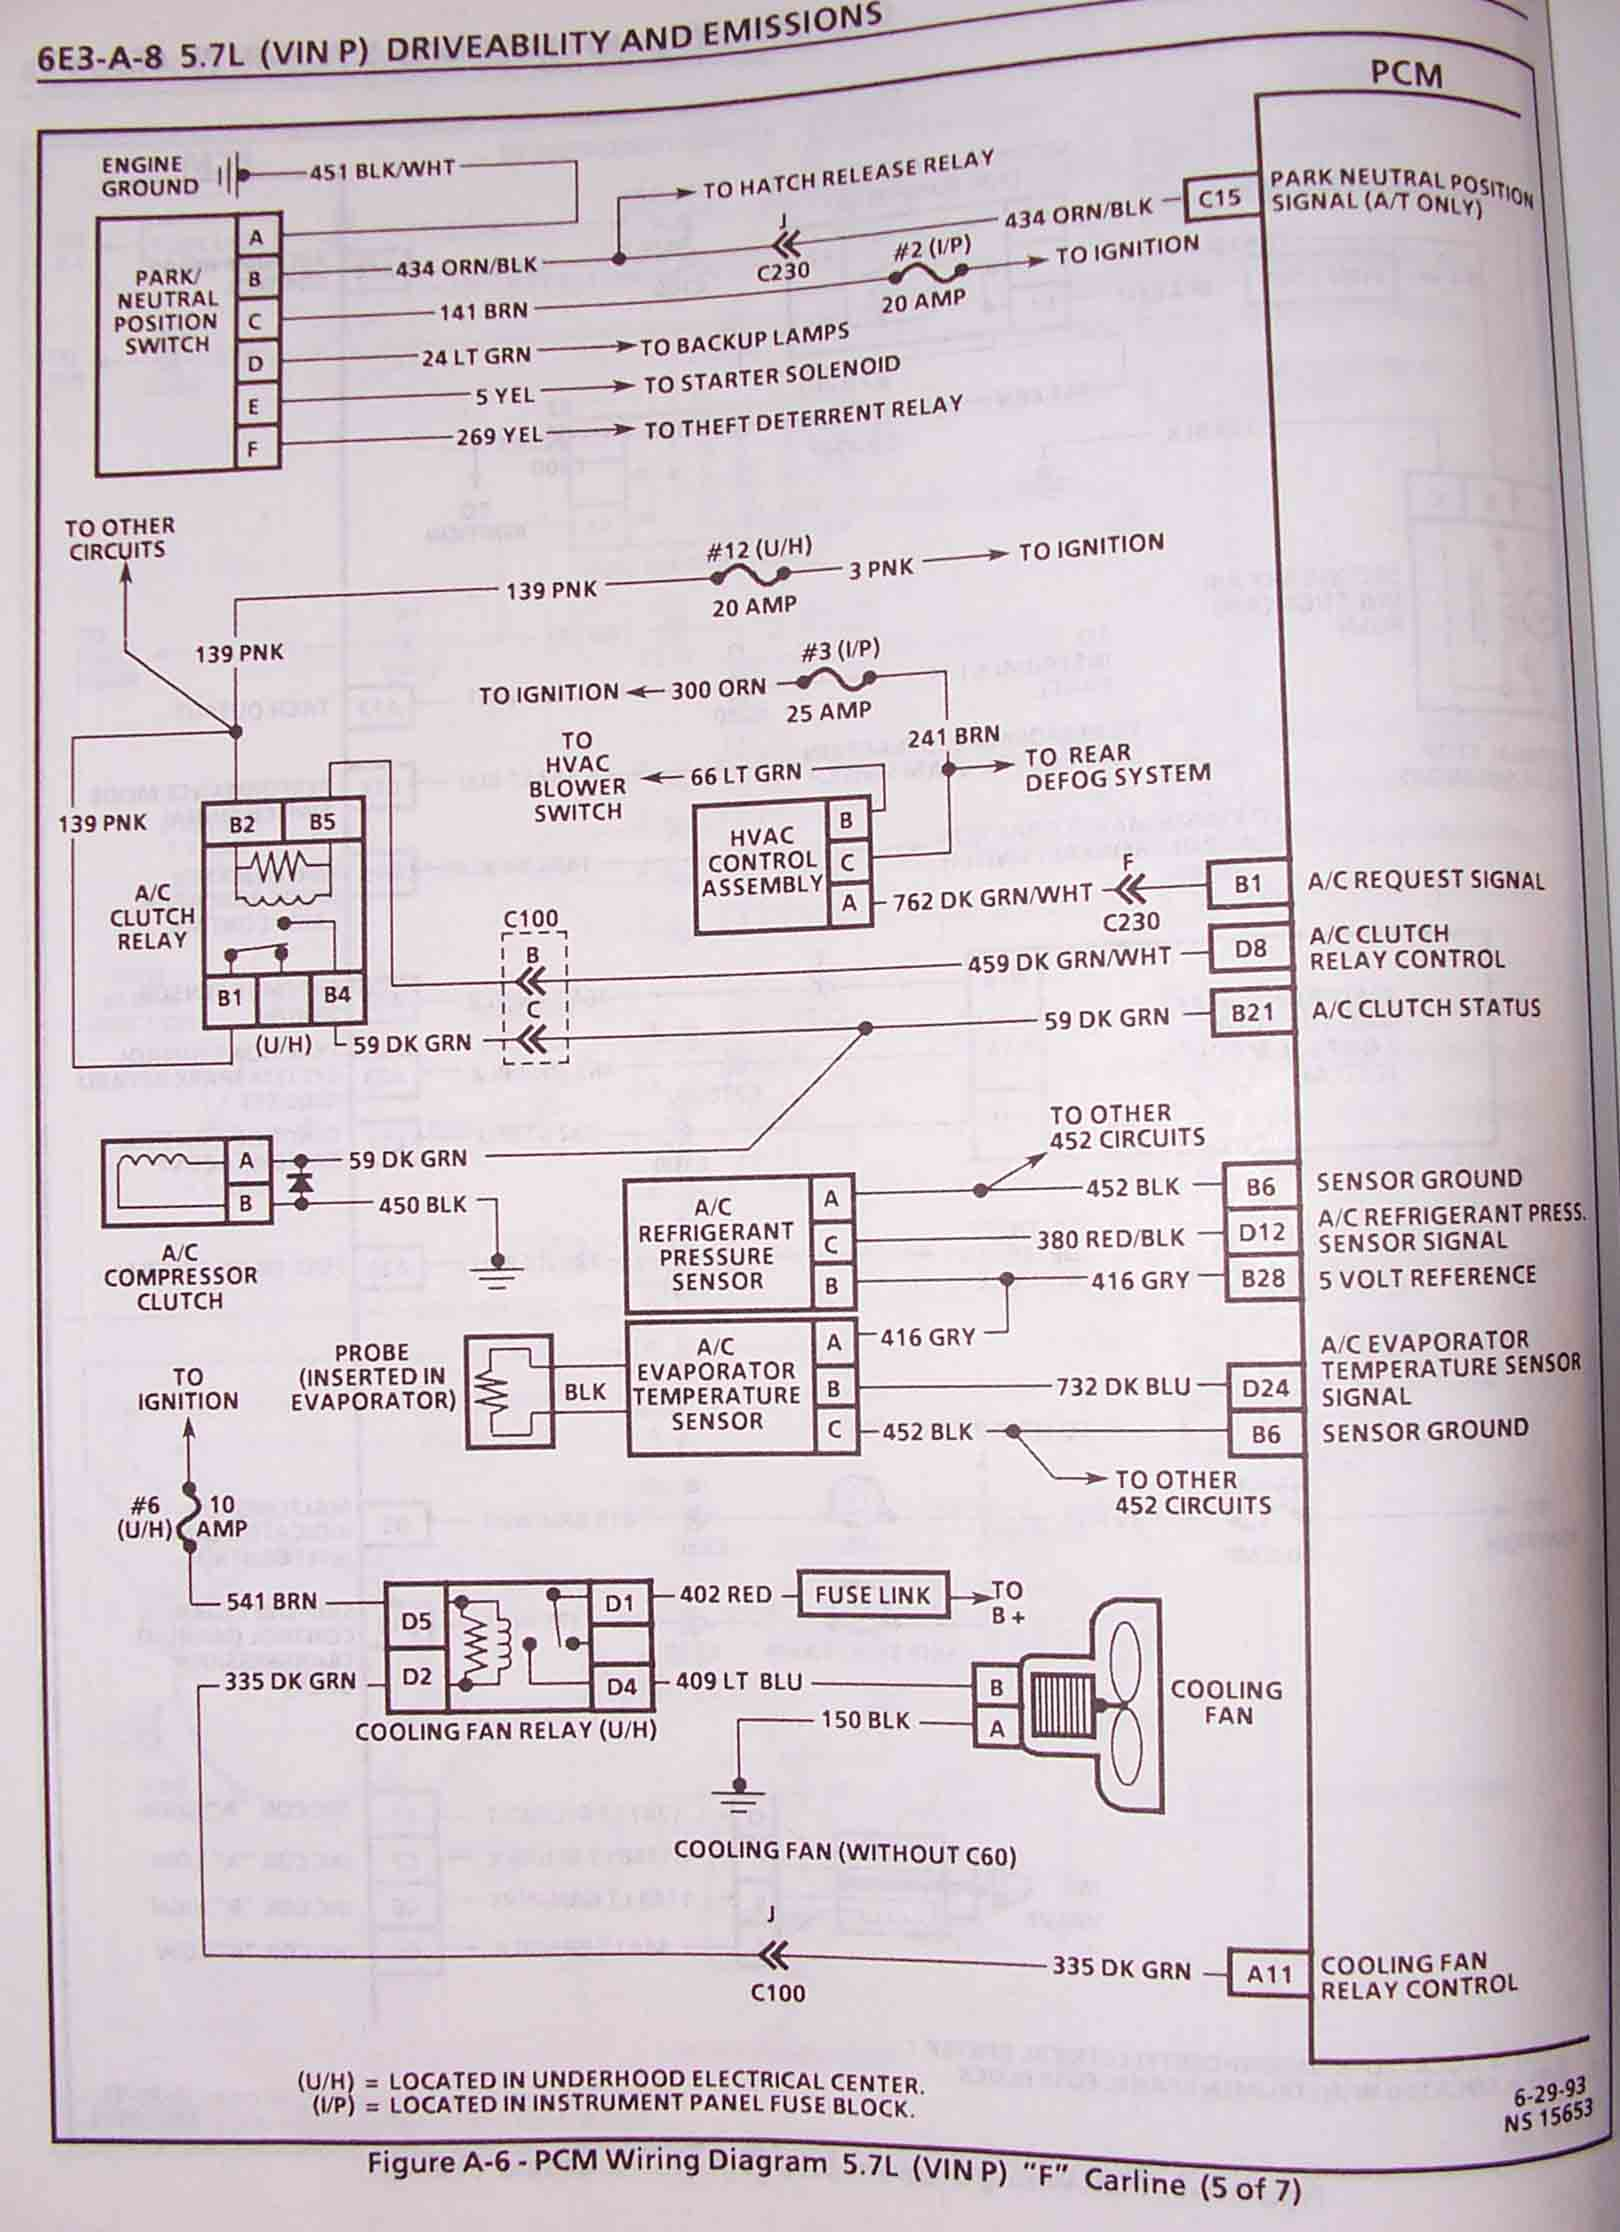 94 Lt1 Pcm Wiring Diagram Data Diagrams Printable Schematic Harness Location 1995 F Body Wire Schematics 96